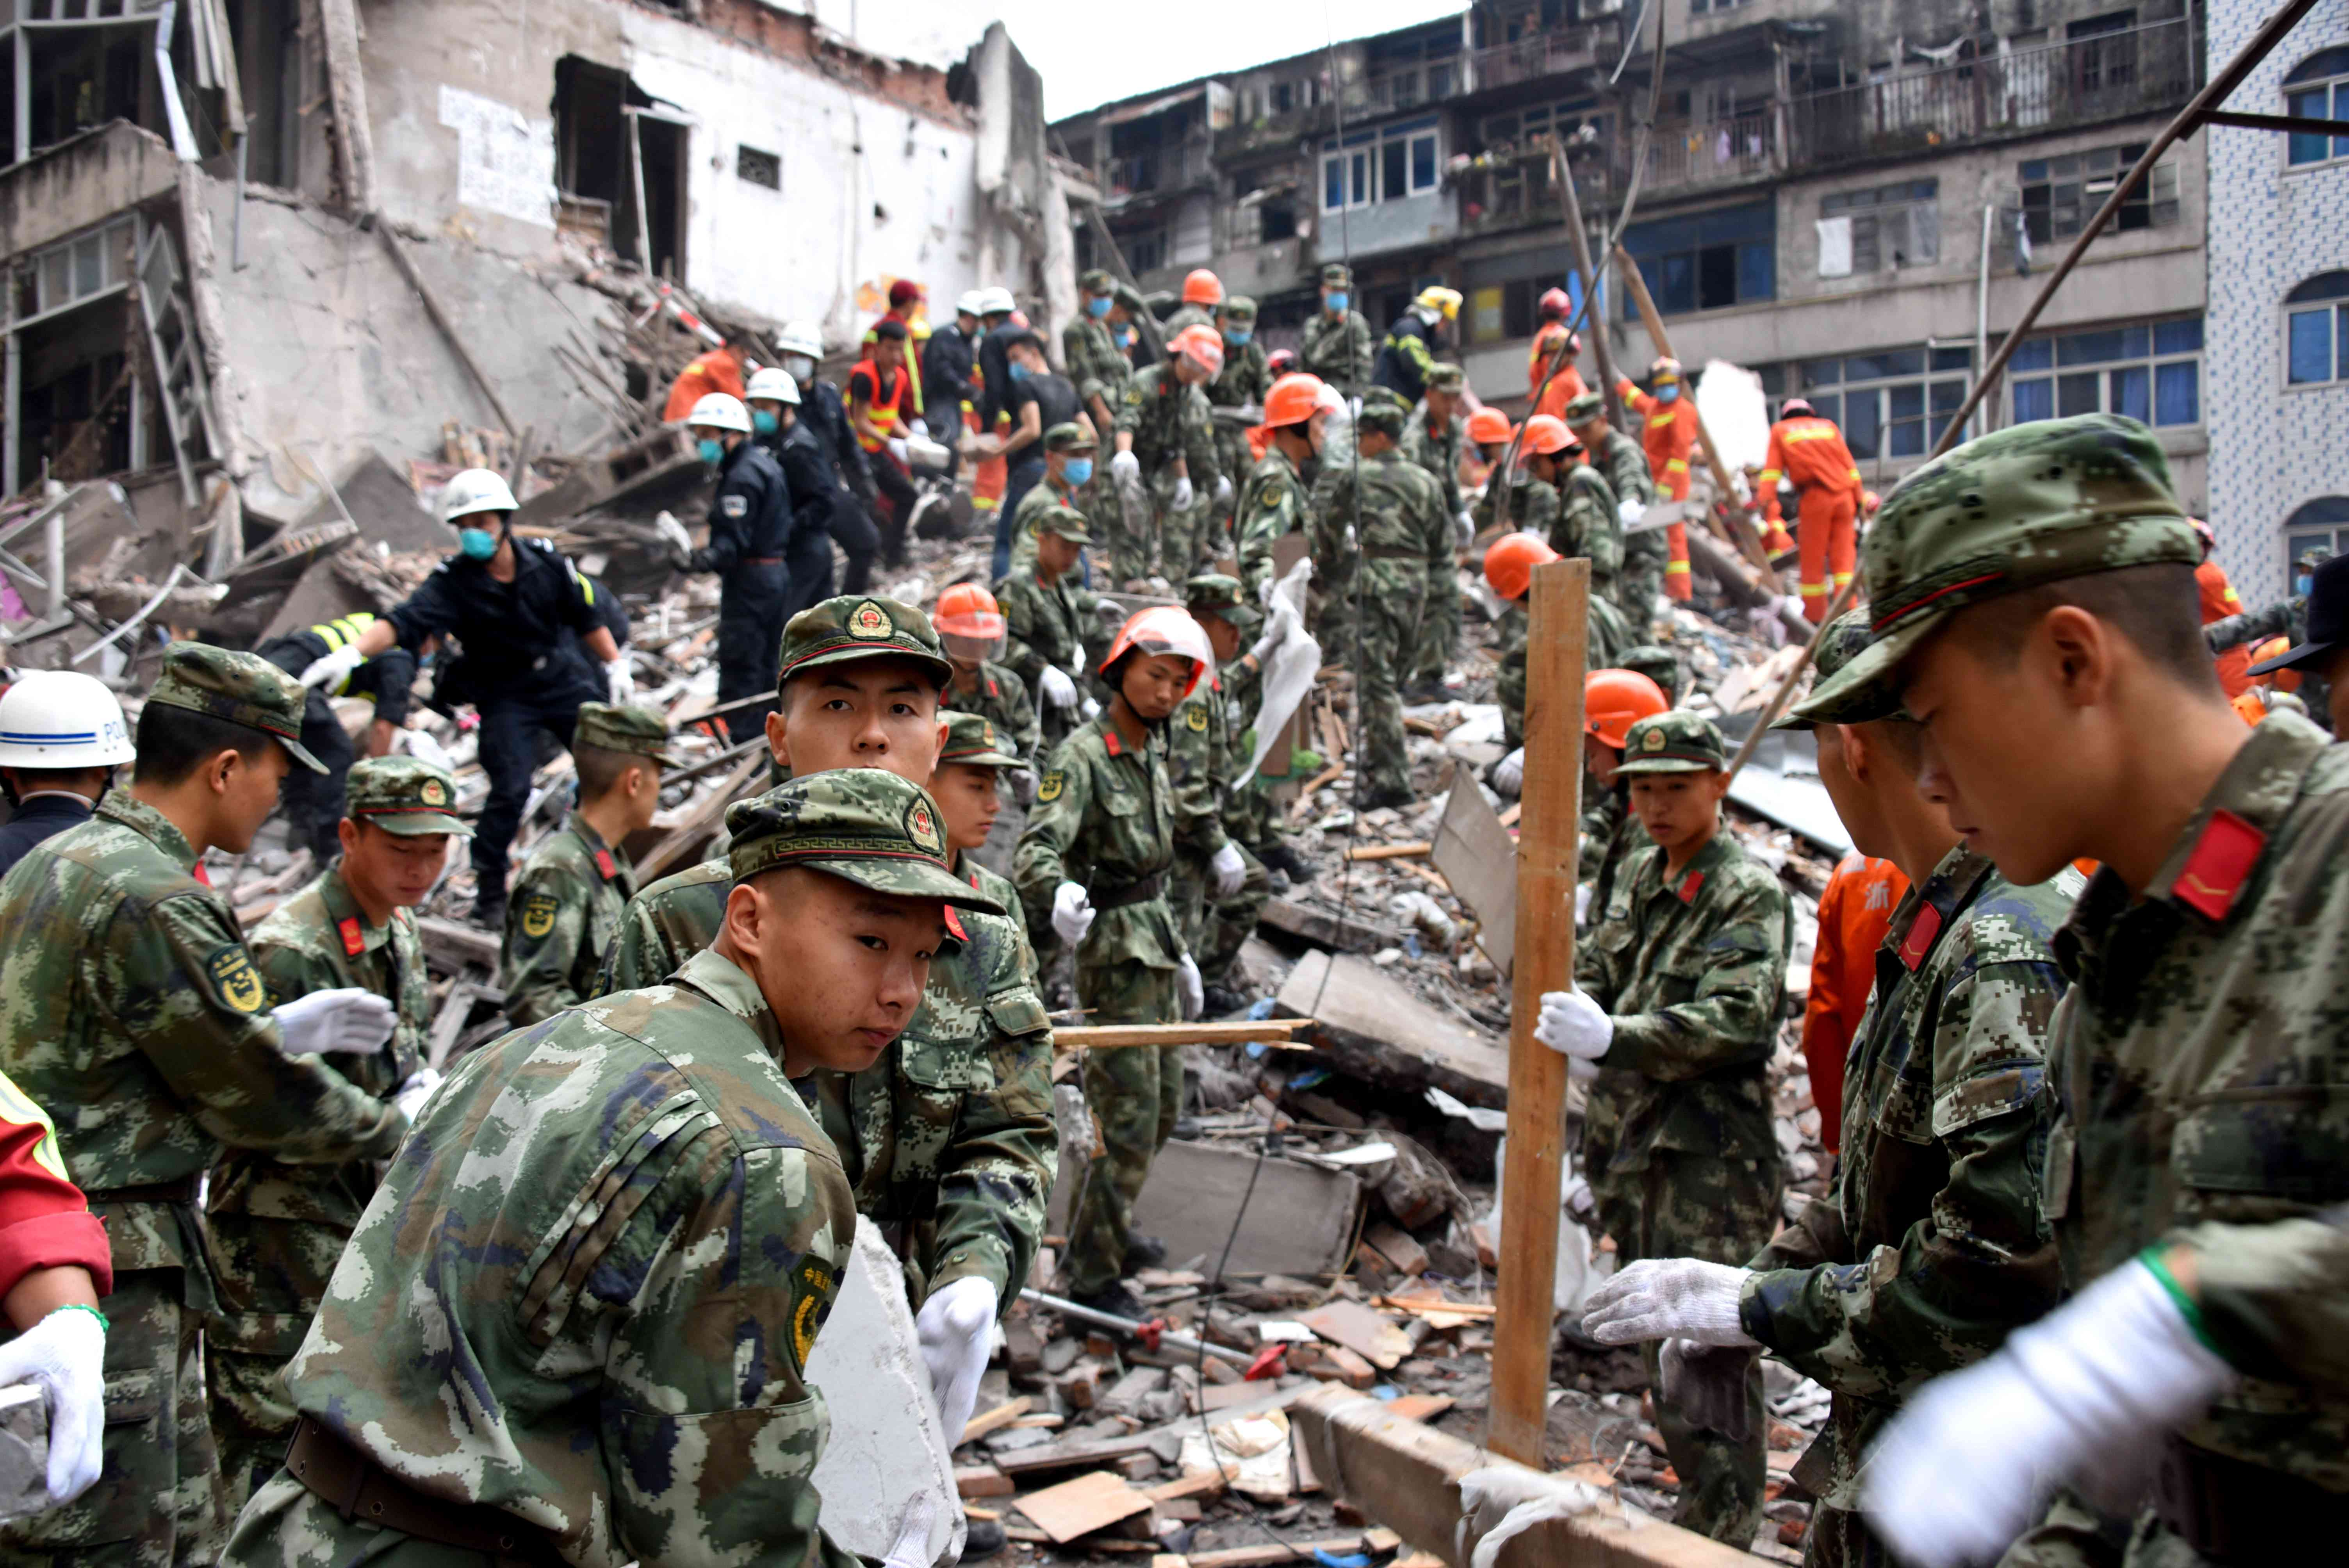 Rescuers search for survivors on the rubble of collapsed buildings on October 10, 2016 in Wenzhou, China.